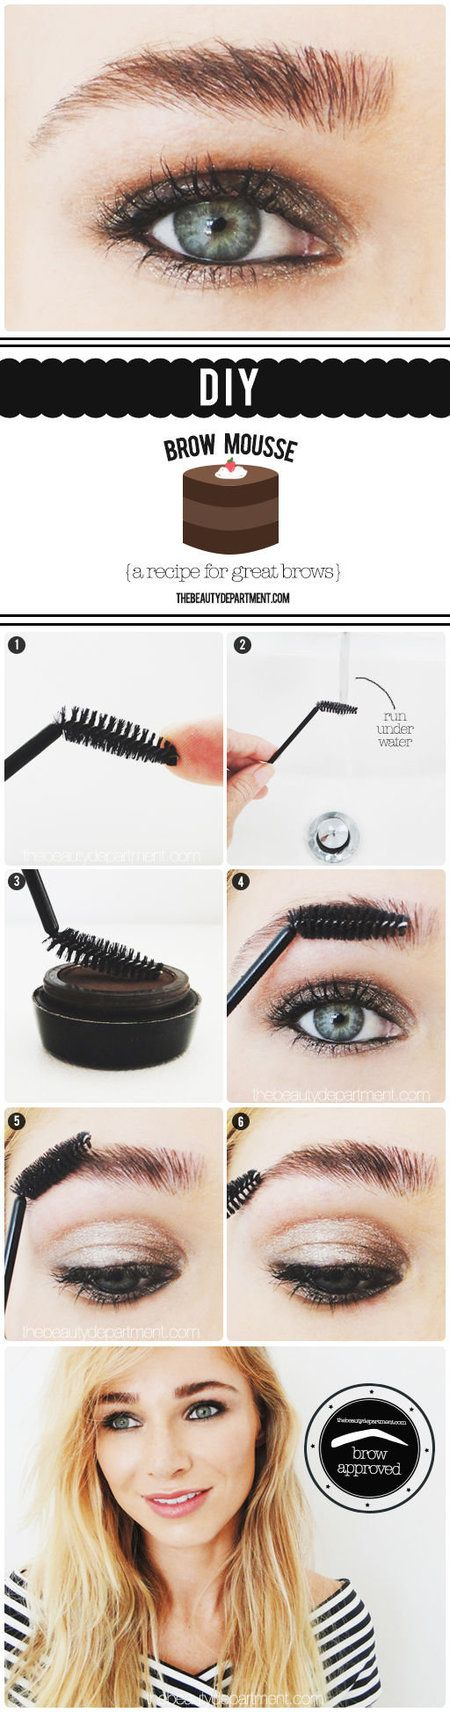 DIY Brow Mousse by The Beauty Department - #DIYbrowmousse #brows #beautydepartment #DIYbrows #browtips #eyebrows - Love beauty? Go to bellashoot.com for beauty inspiration!